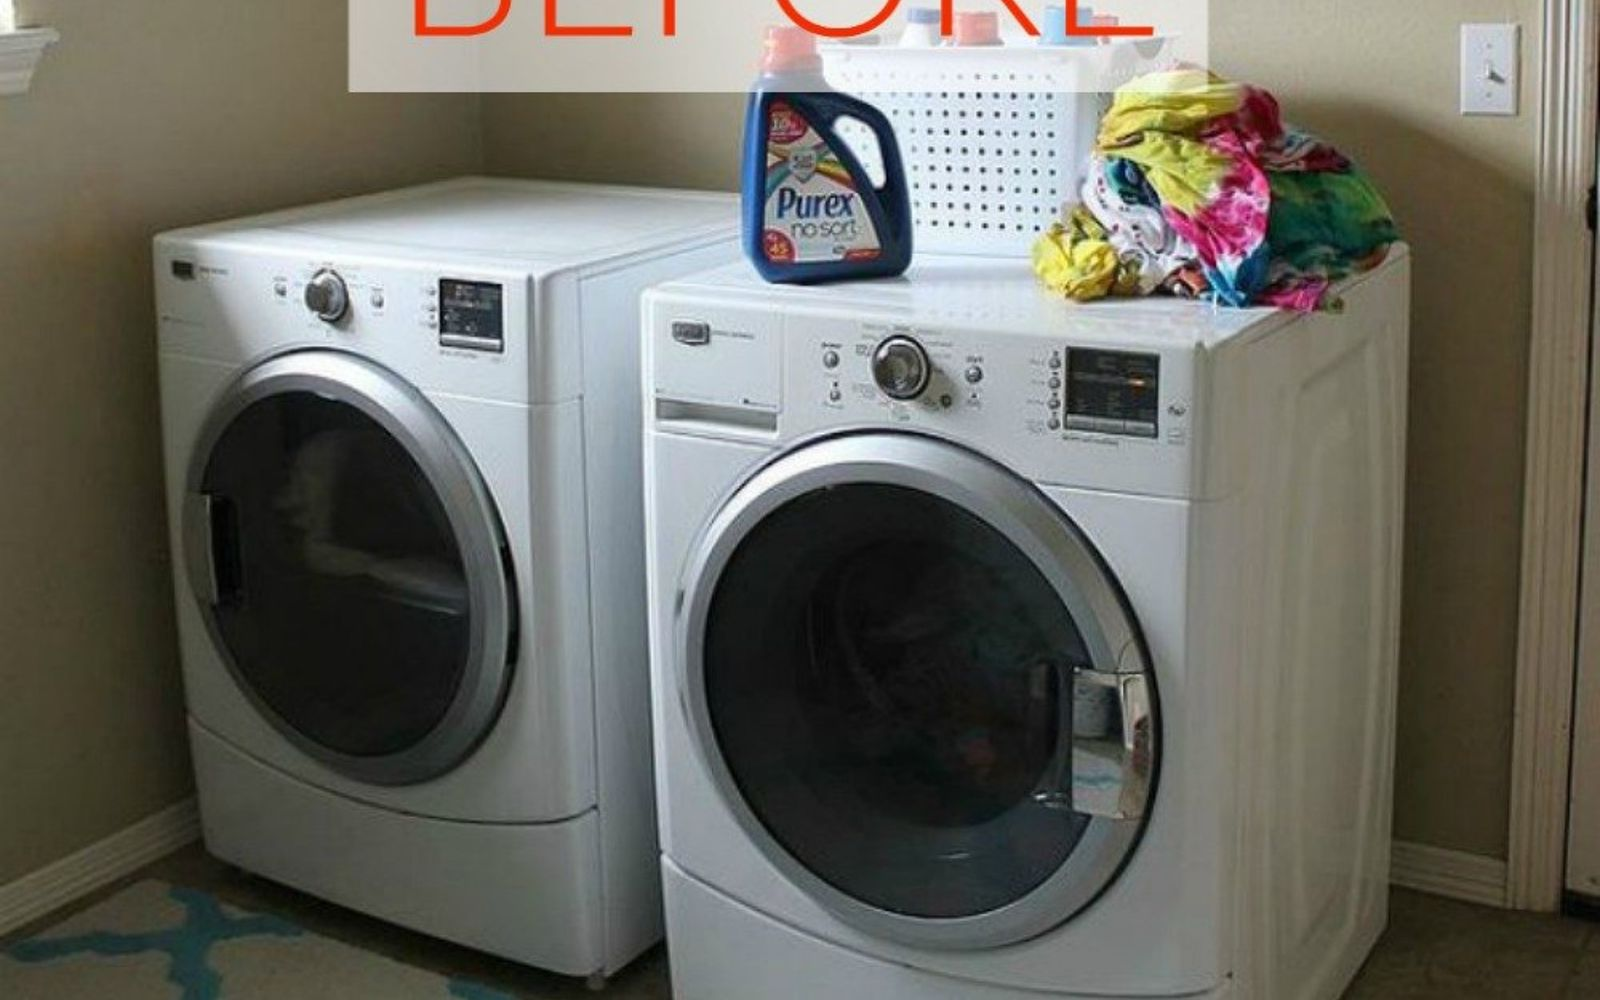 s don t buy new appliances these 9 diy hacks are brilliant, appliances, Before A boring and plain washer and dryer